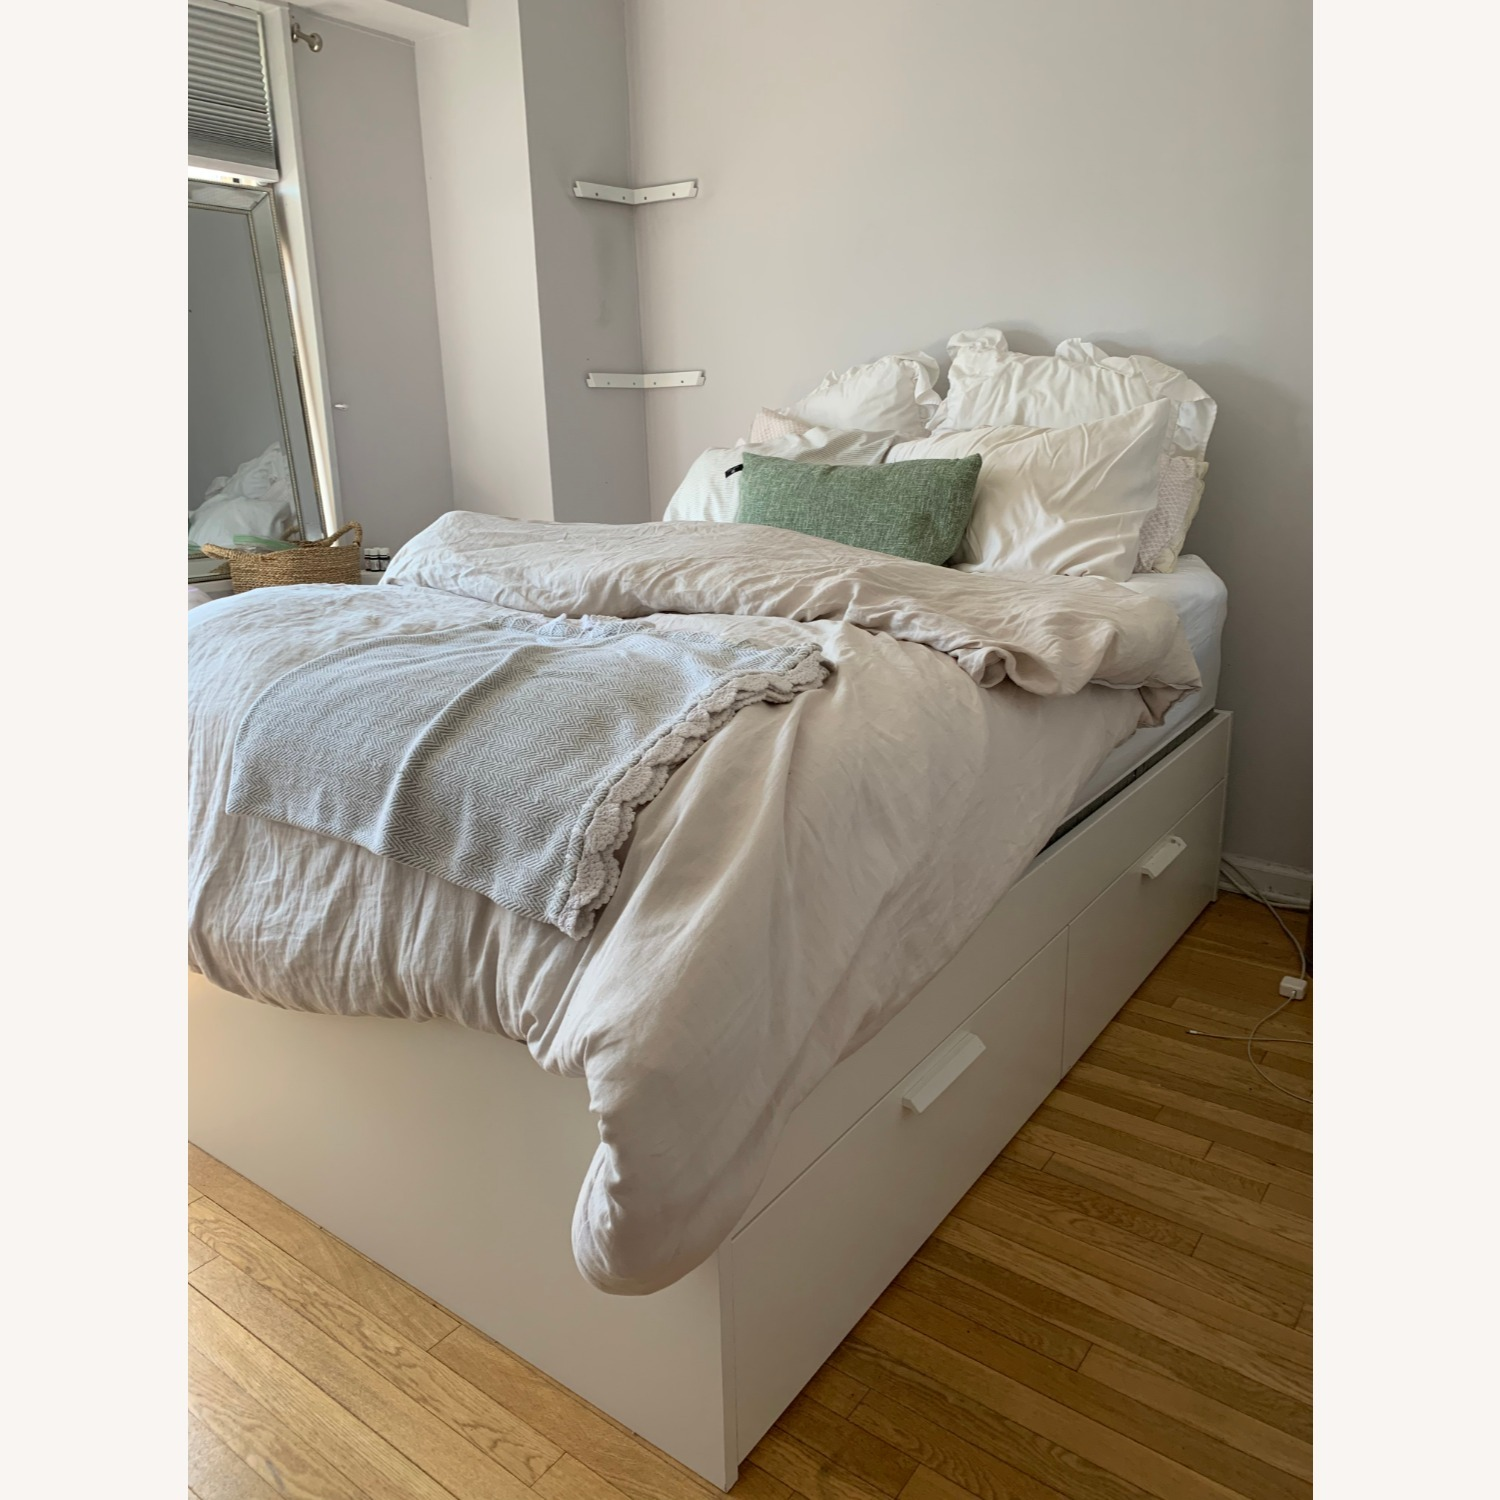 Ikea Bed Frame With Storage While Full Aptdeco,Cottage Country Kitchen Lighting